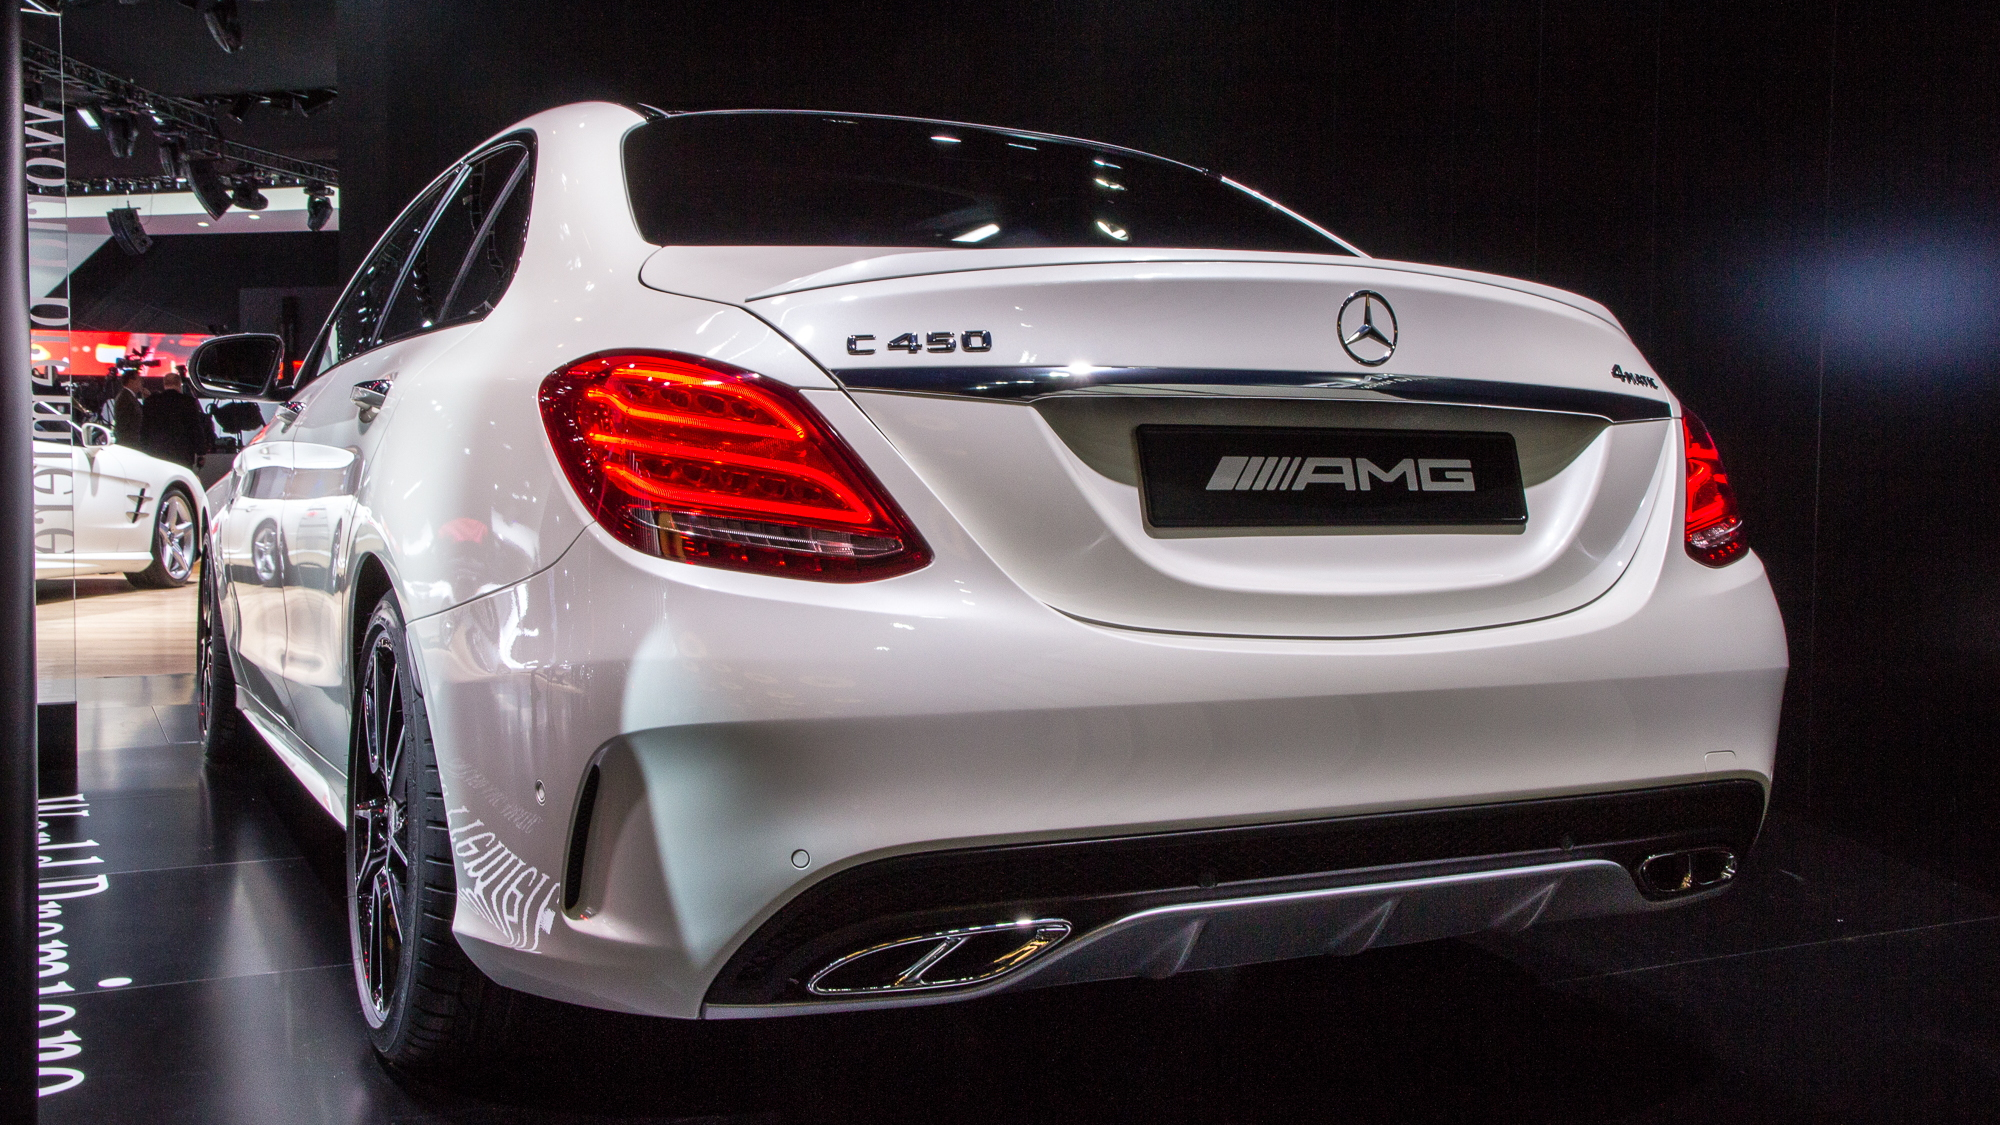 2016 Mercedes-Benz C450 AMG 4Matic live photos, 2015 Detroit Auto Show